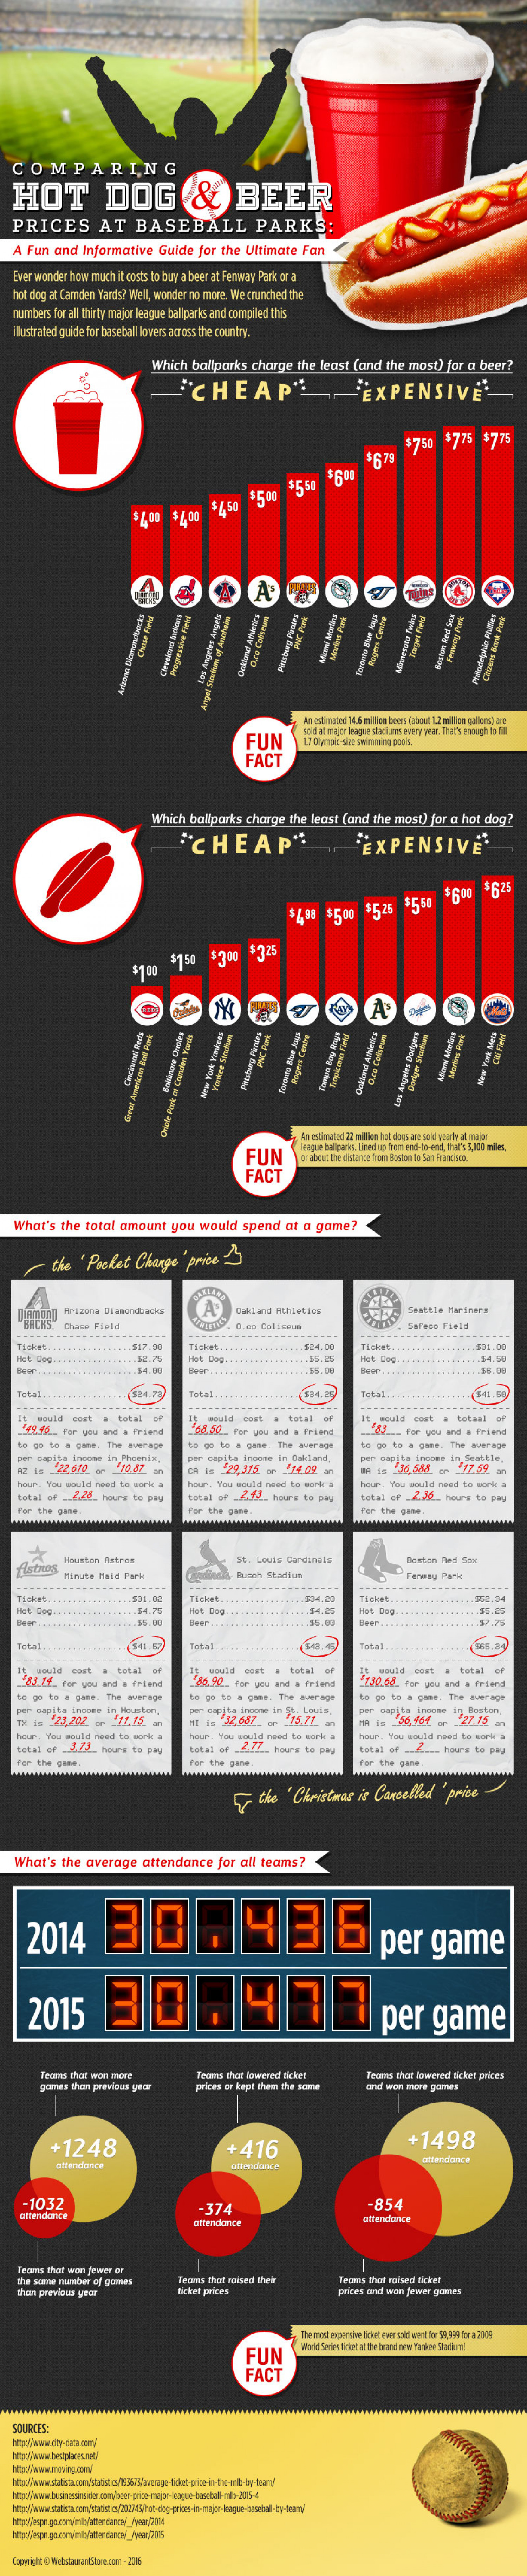 Comparing Beer, Hot Dog, and Ticket Prices at Major League Baseball Parks | 2016 Infographic